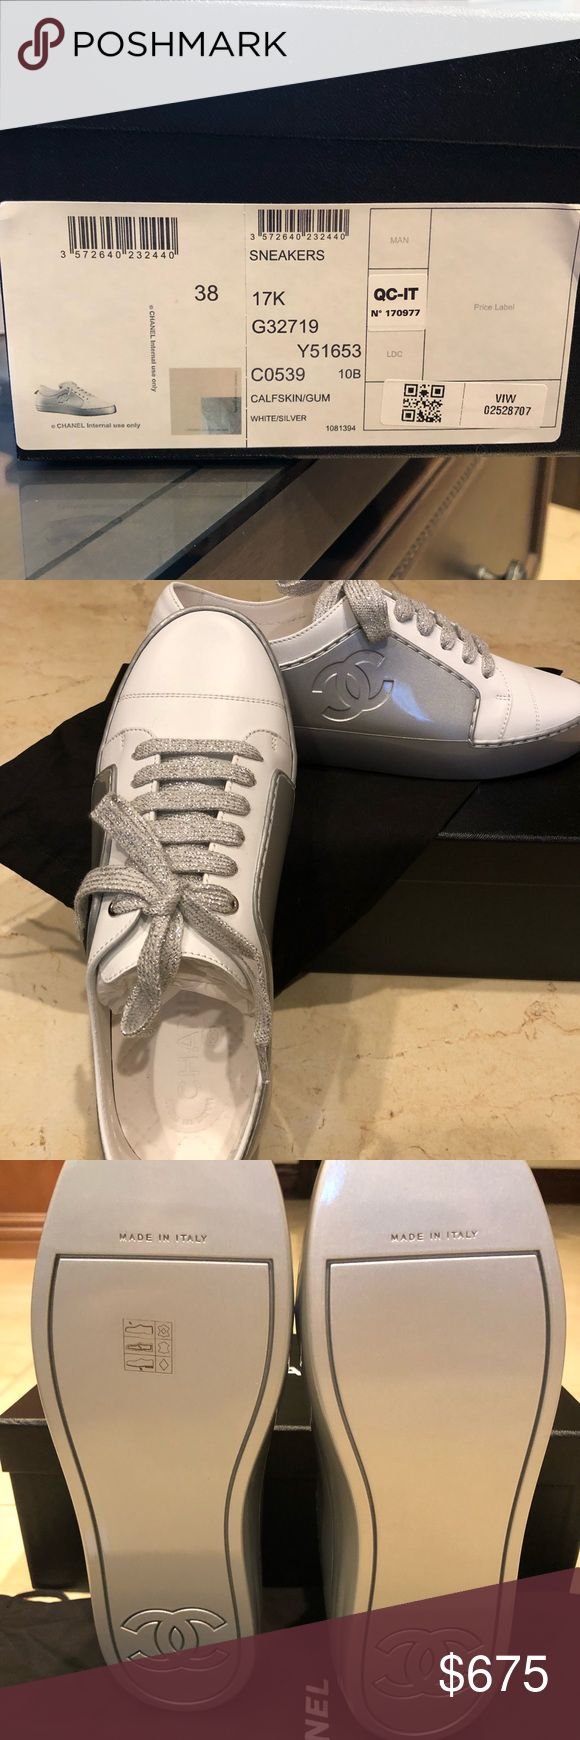 Chanel sneakers size 38 Brand new Chanel sneakers size 38 2017/2018 collections  Original price $825 USD + tax Fabric: Silver 0.4 in heel  10mm heel CHANEL Shoes Sneakers